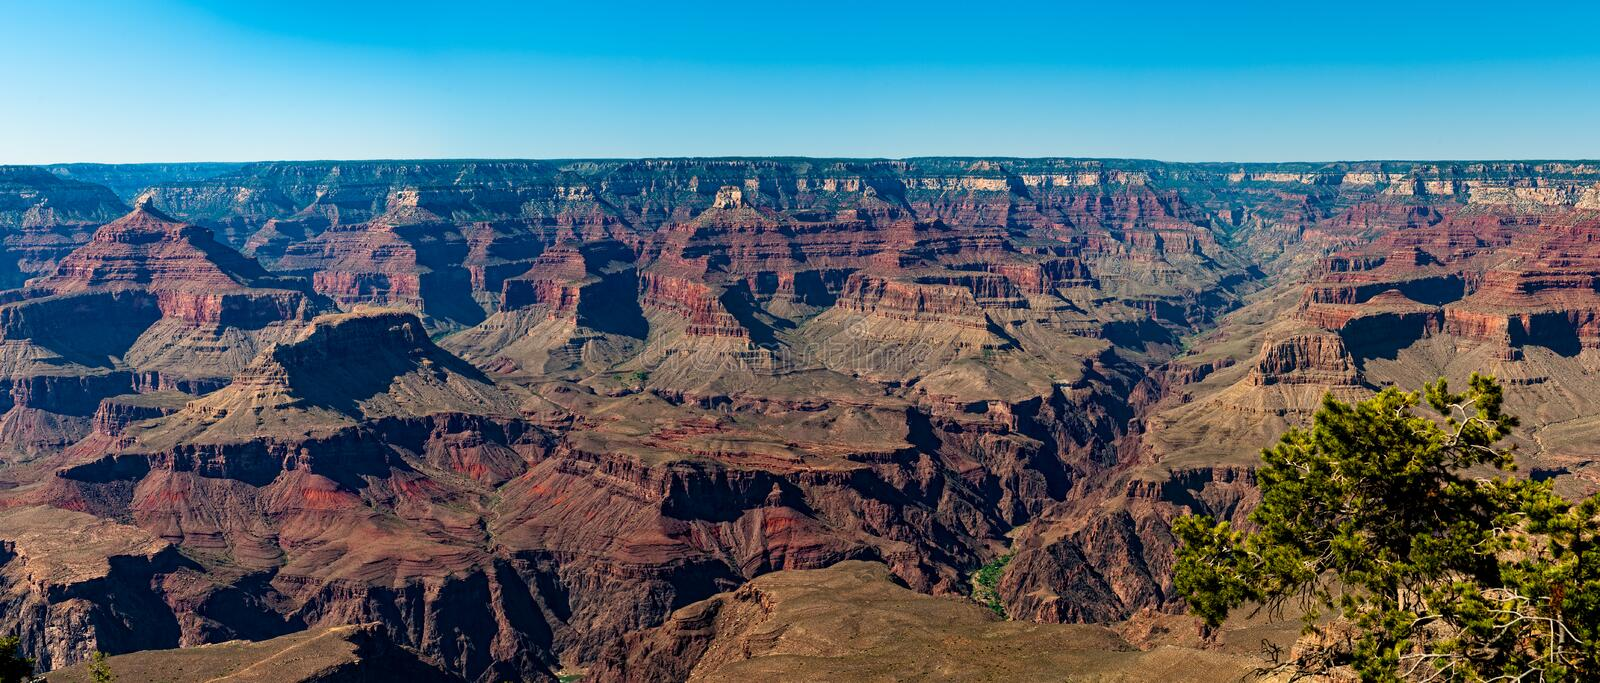 South Rim Grand Canyon royalty free stock photography